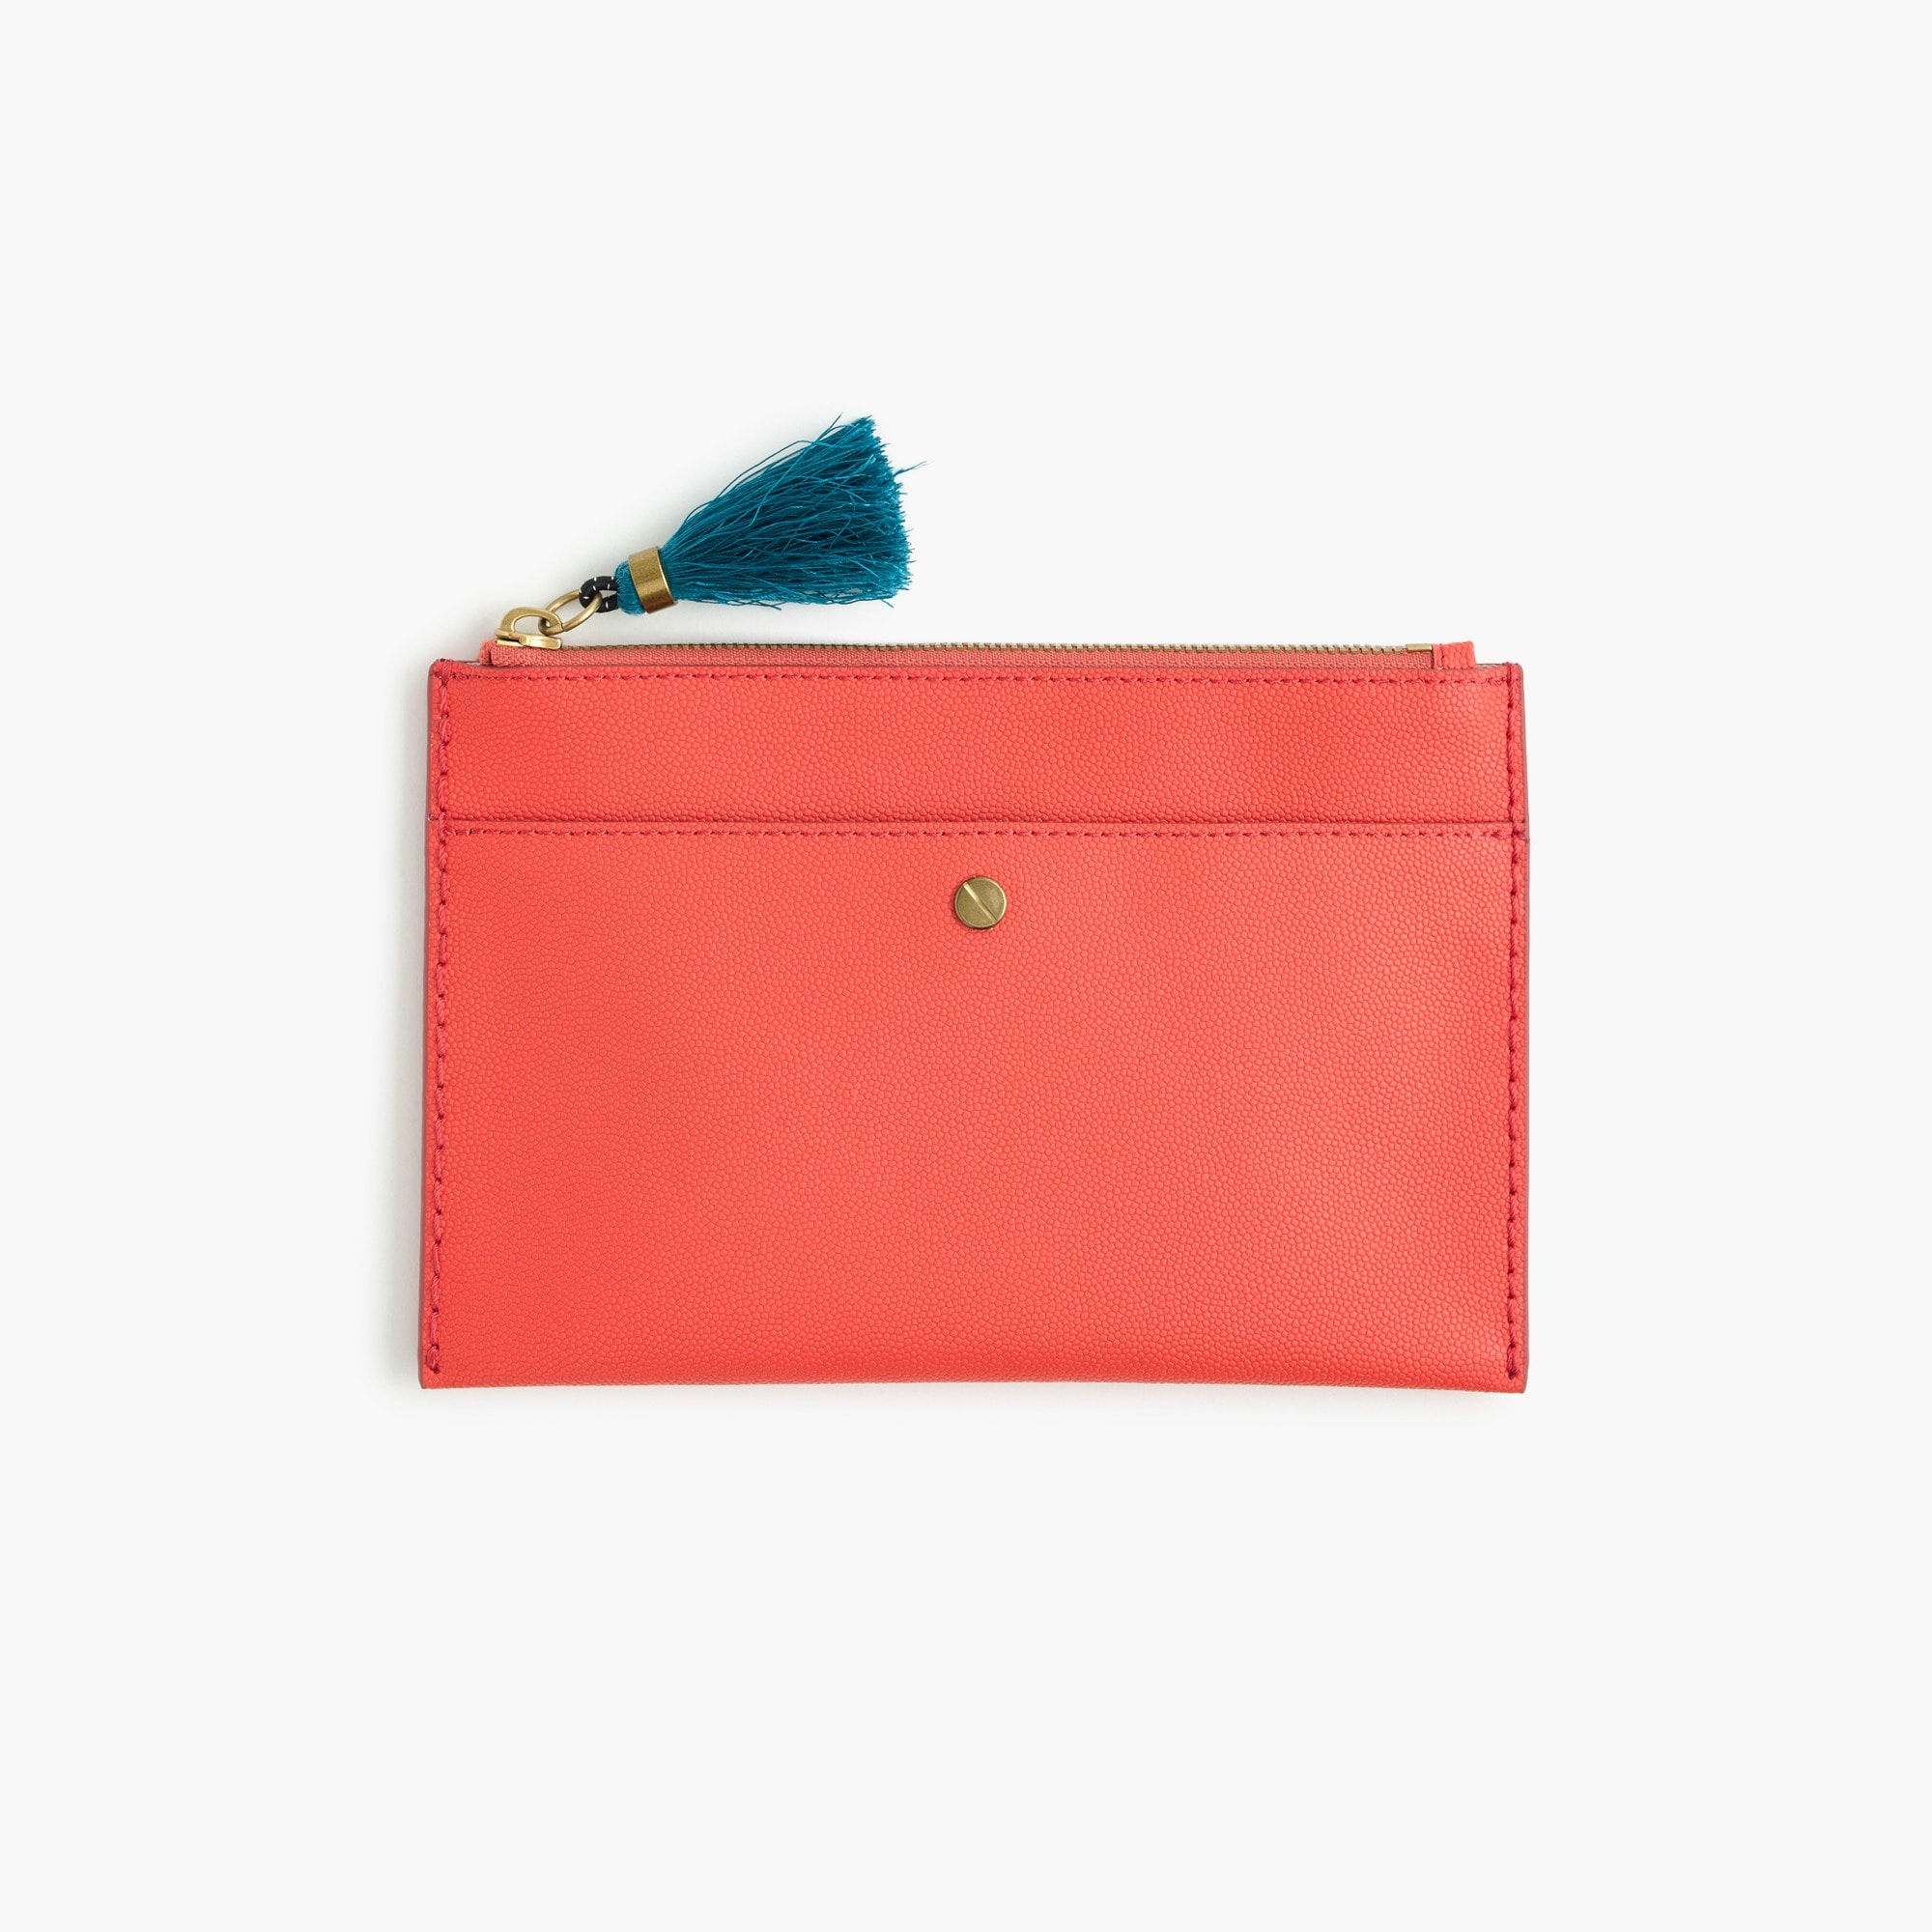 Medium pouch in Italian leather